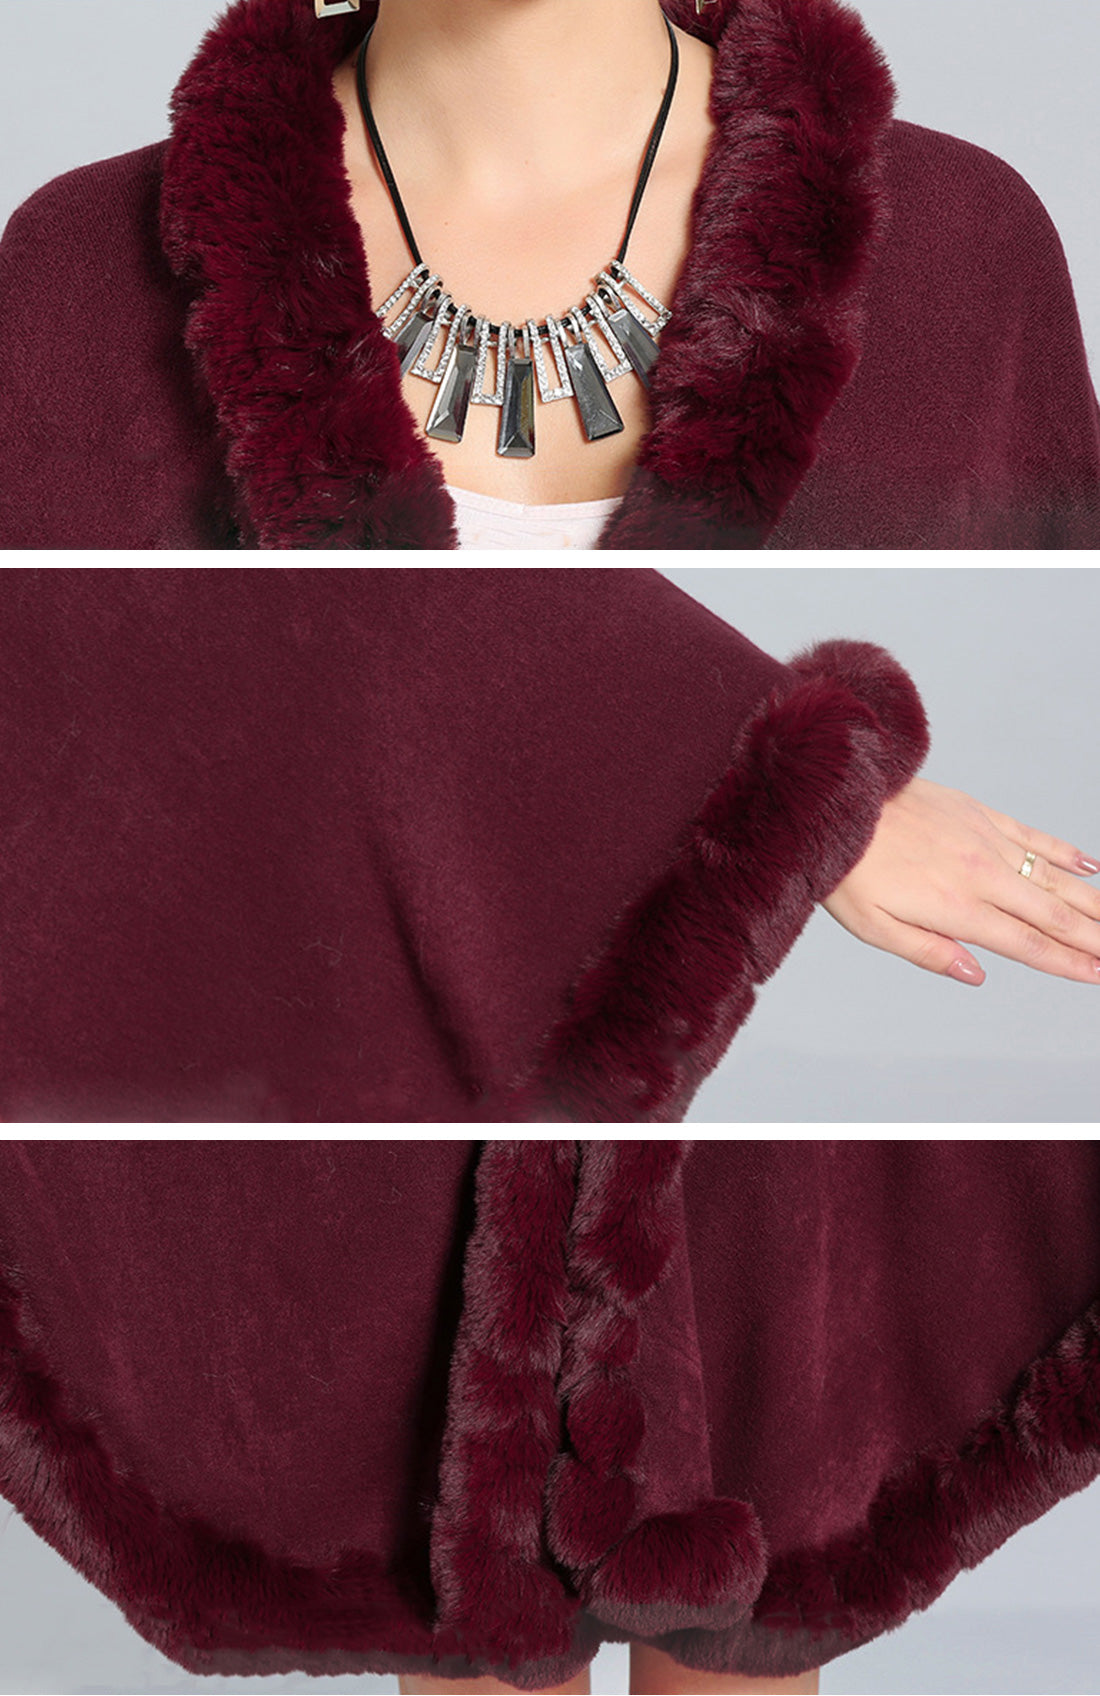 Fine and Fancy Poncho Plus Size Caped Coat Details